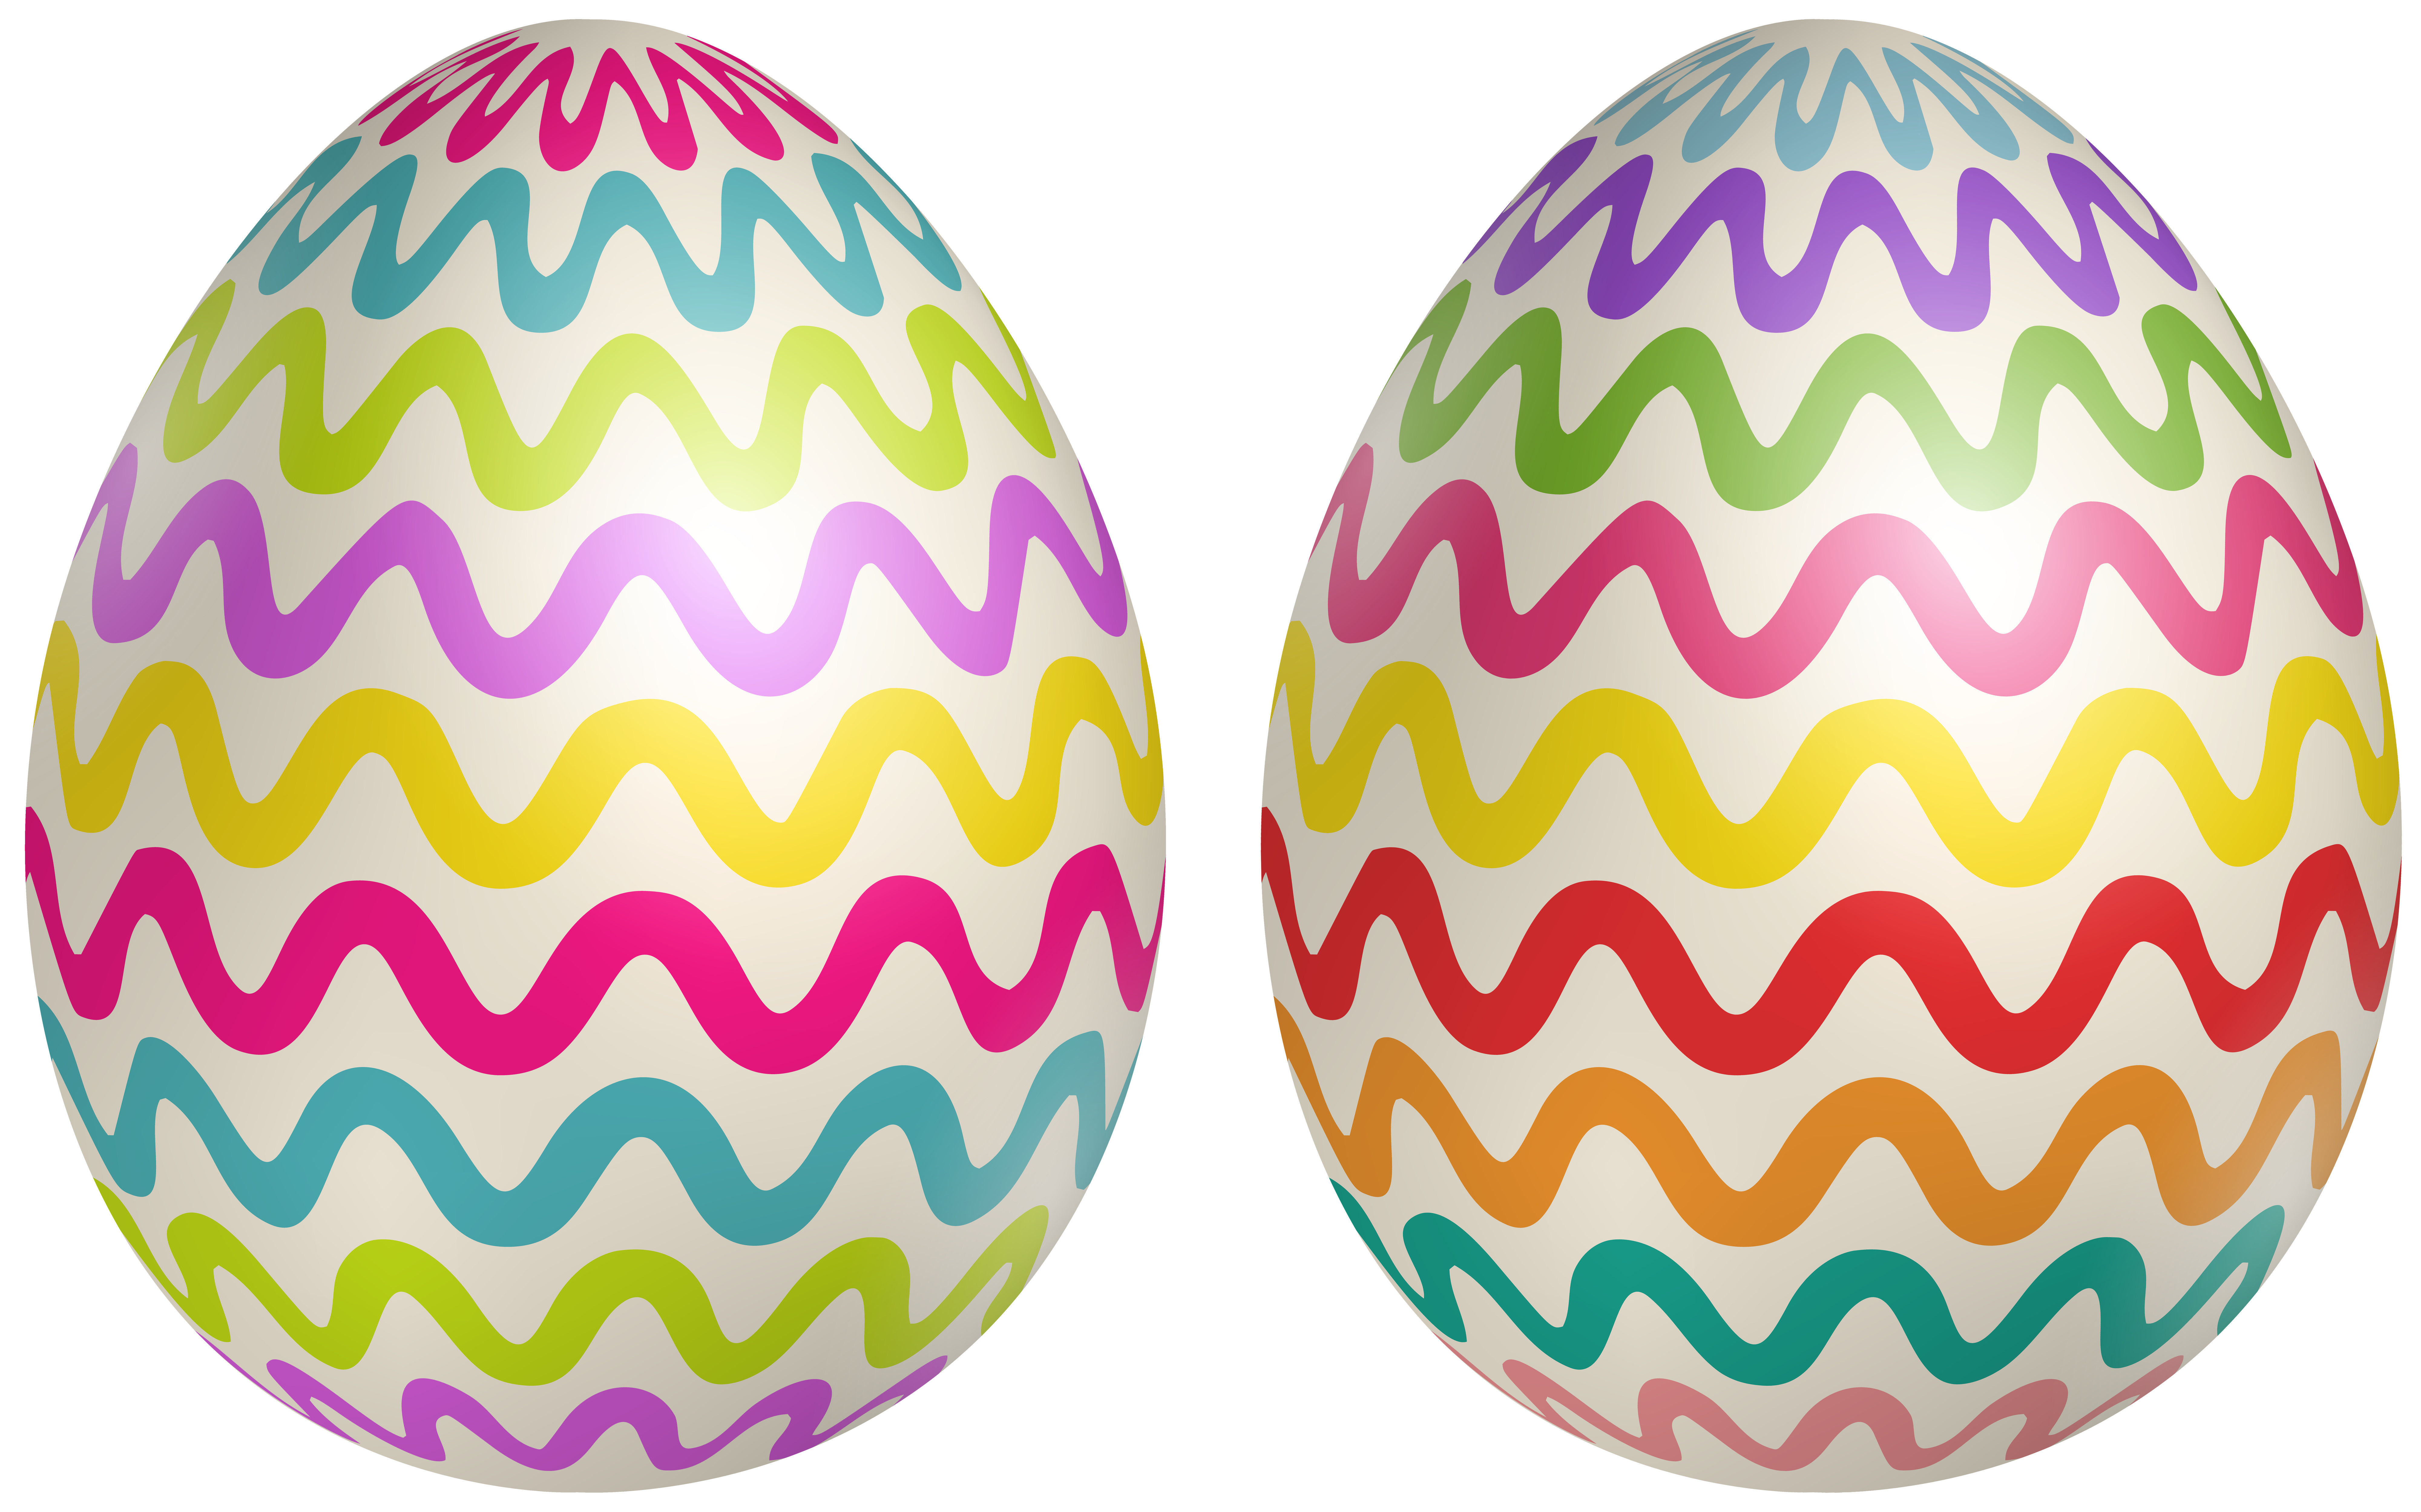 Decorative Easter Eggs Clipart Image.